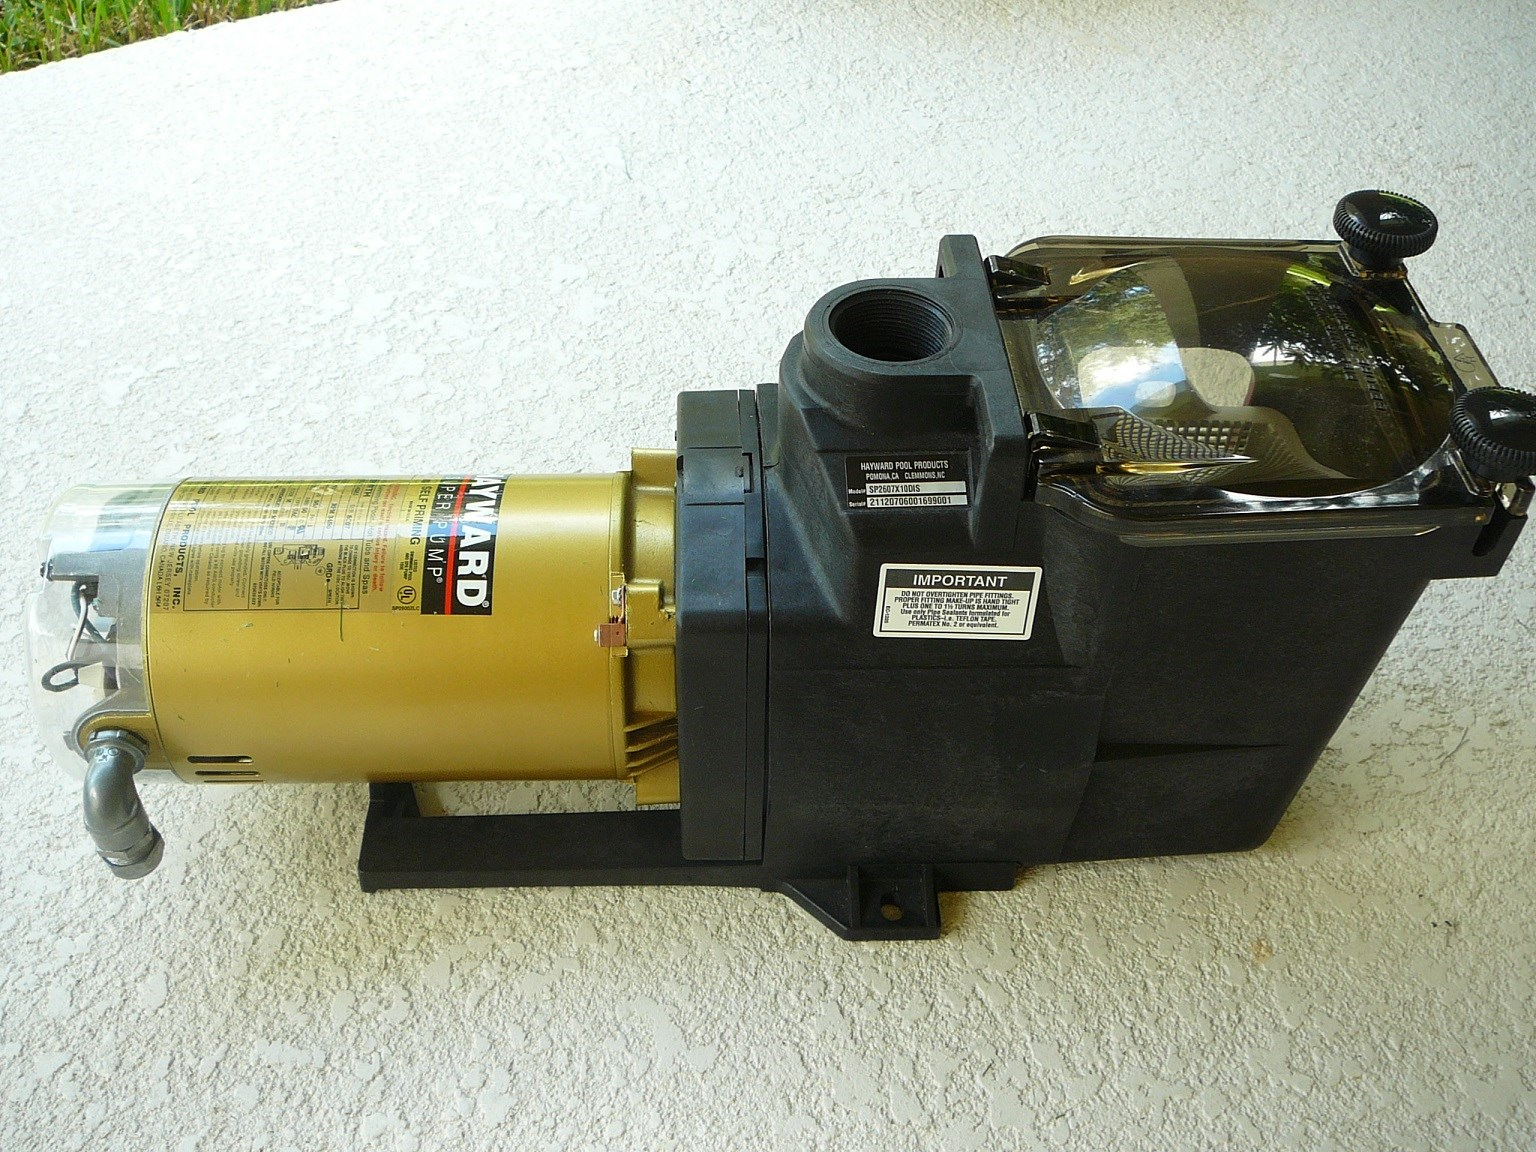 How a pool pump works inyopools this page provides a short tutorial on the main parts of a pool pump and how a pool pump works this example describes a hayward super ii pump but the pool sciox Image collections